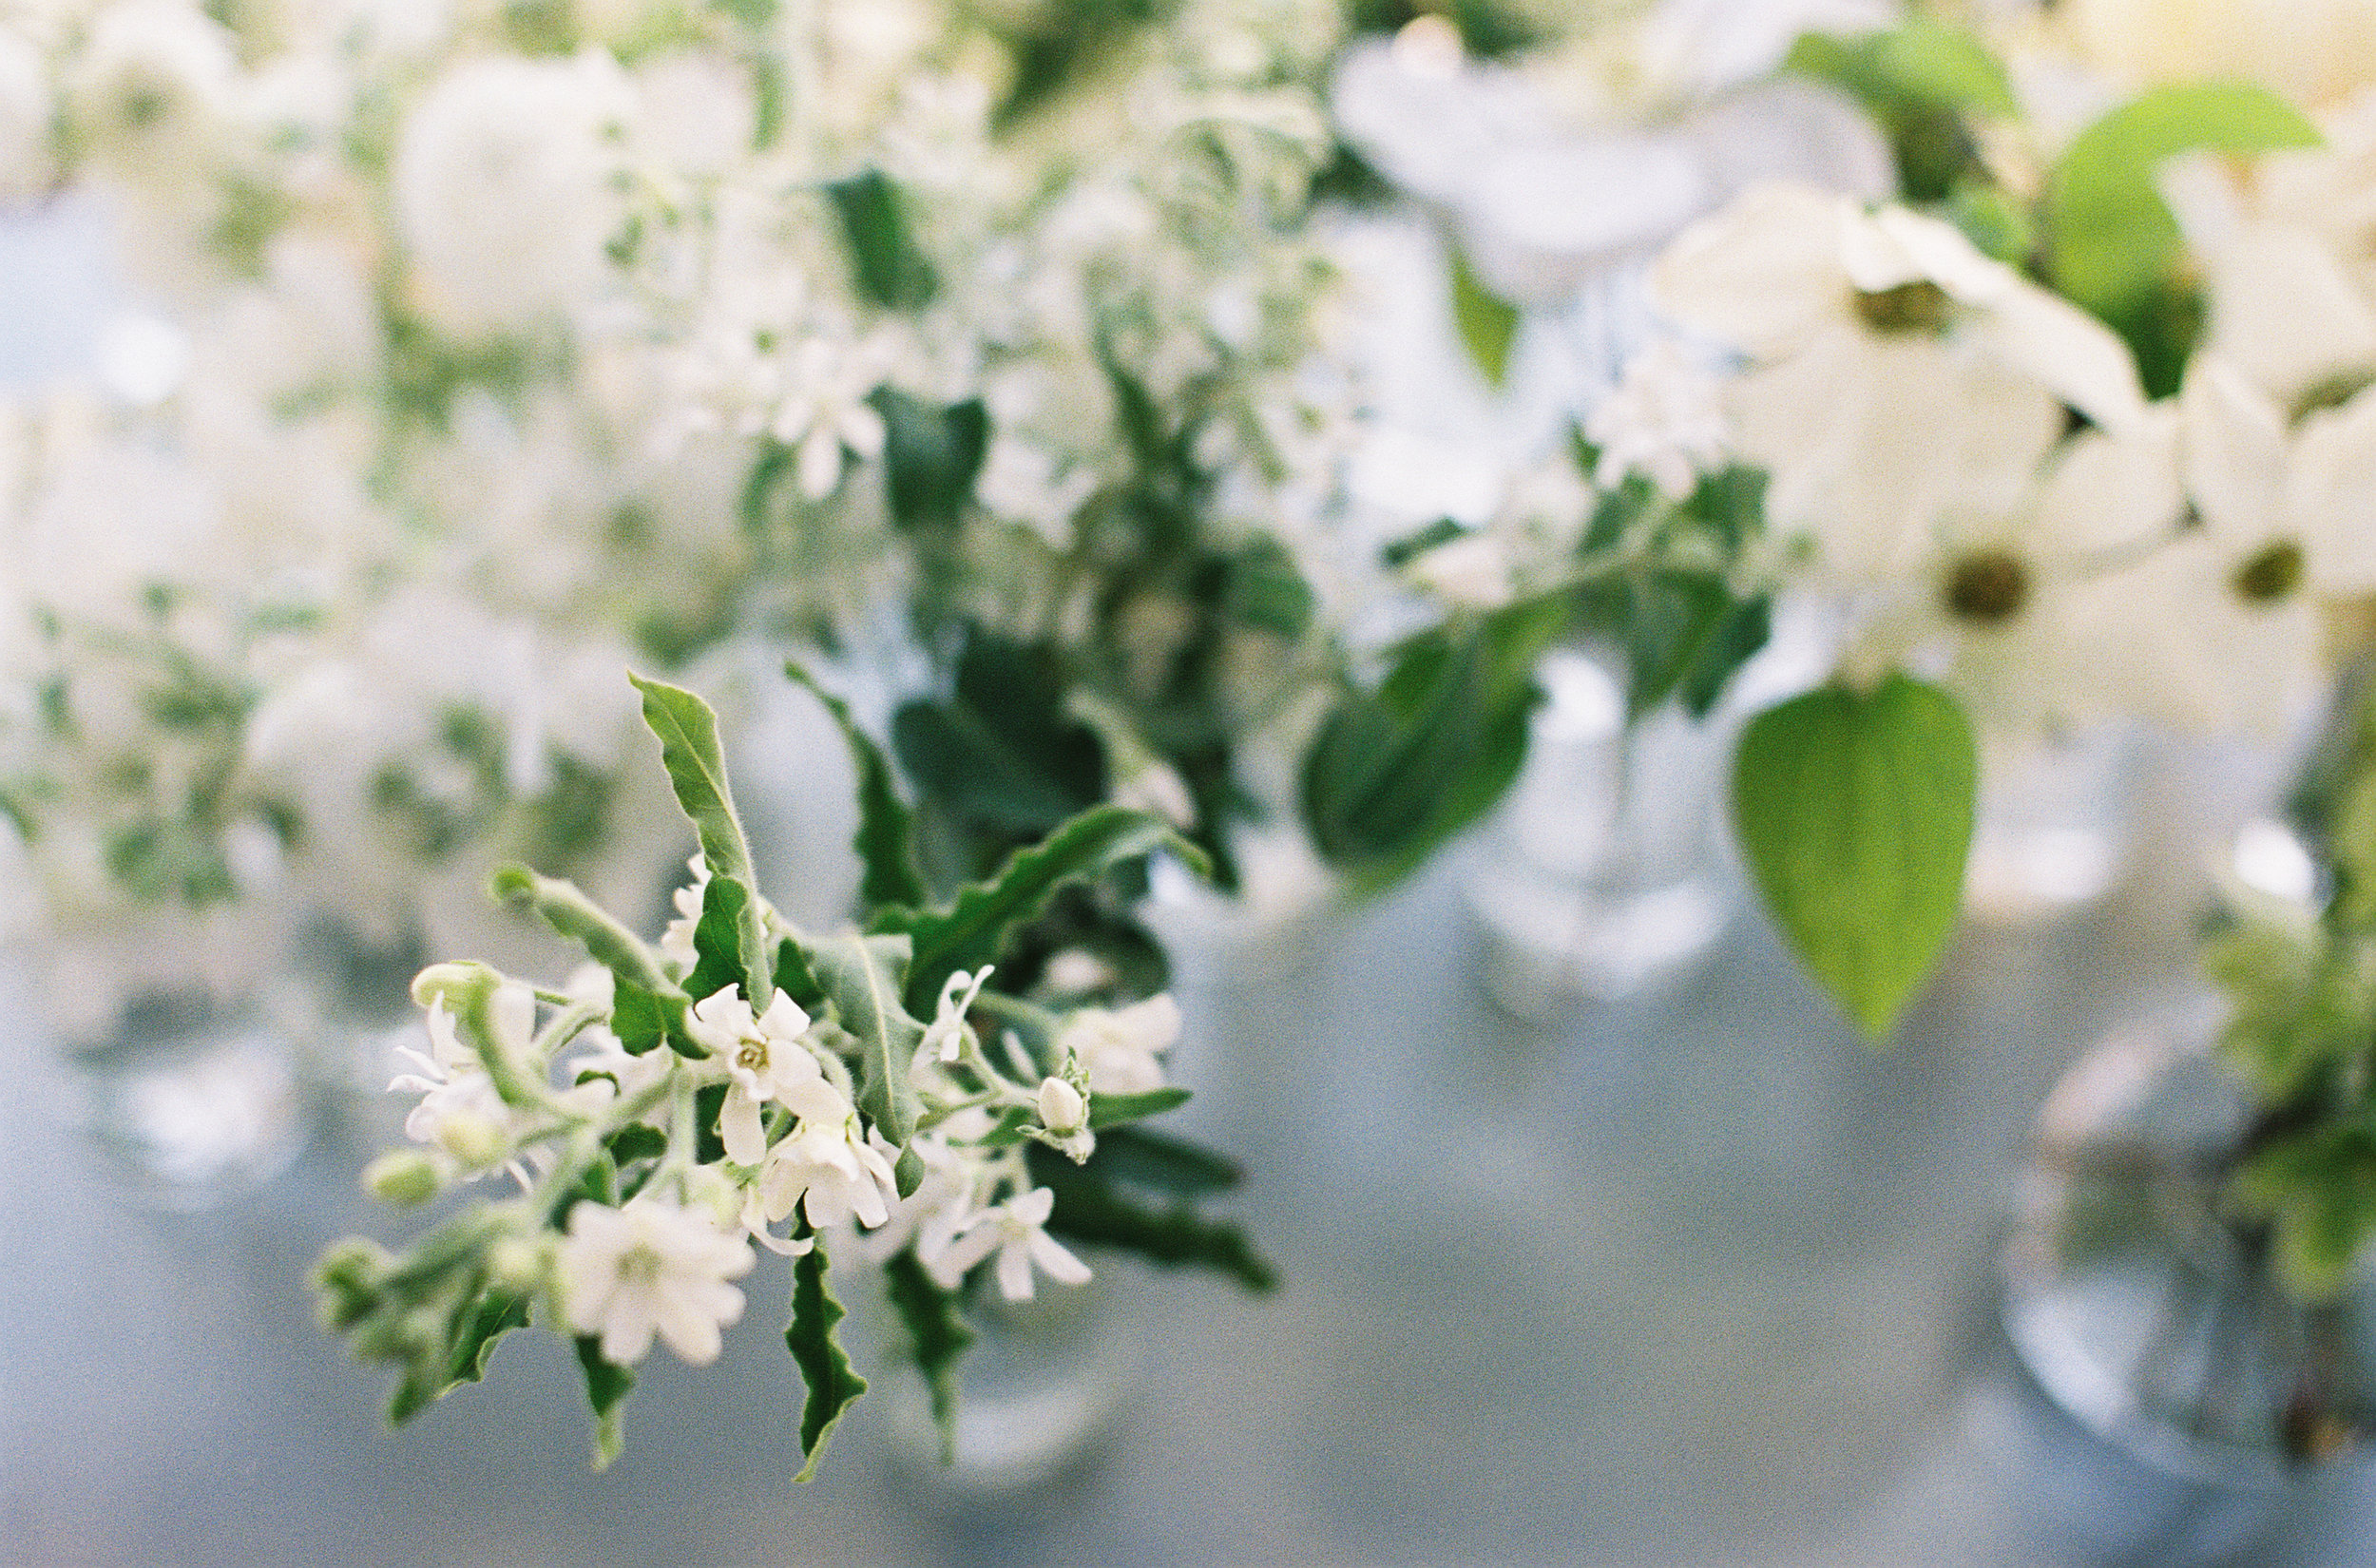 1. - Forage for branches and foliage in your garden or take cuttings from potted plants. Herbs, vines, garden roses and branches are all you need. If you'd rather shop for pre-cut flowers, choose jasmine, spray roses, hellebores, chamomile and eucalyptus for a similar look.